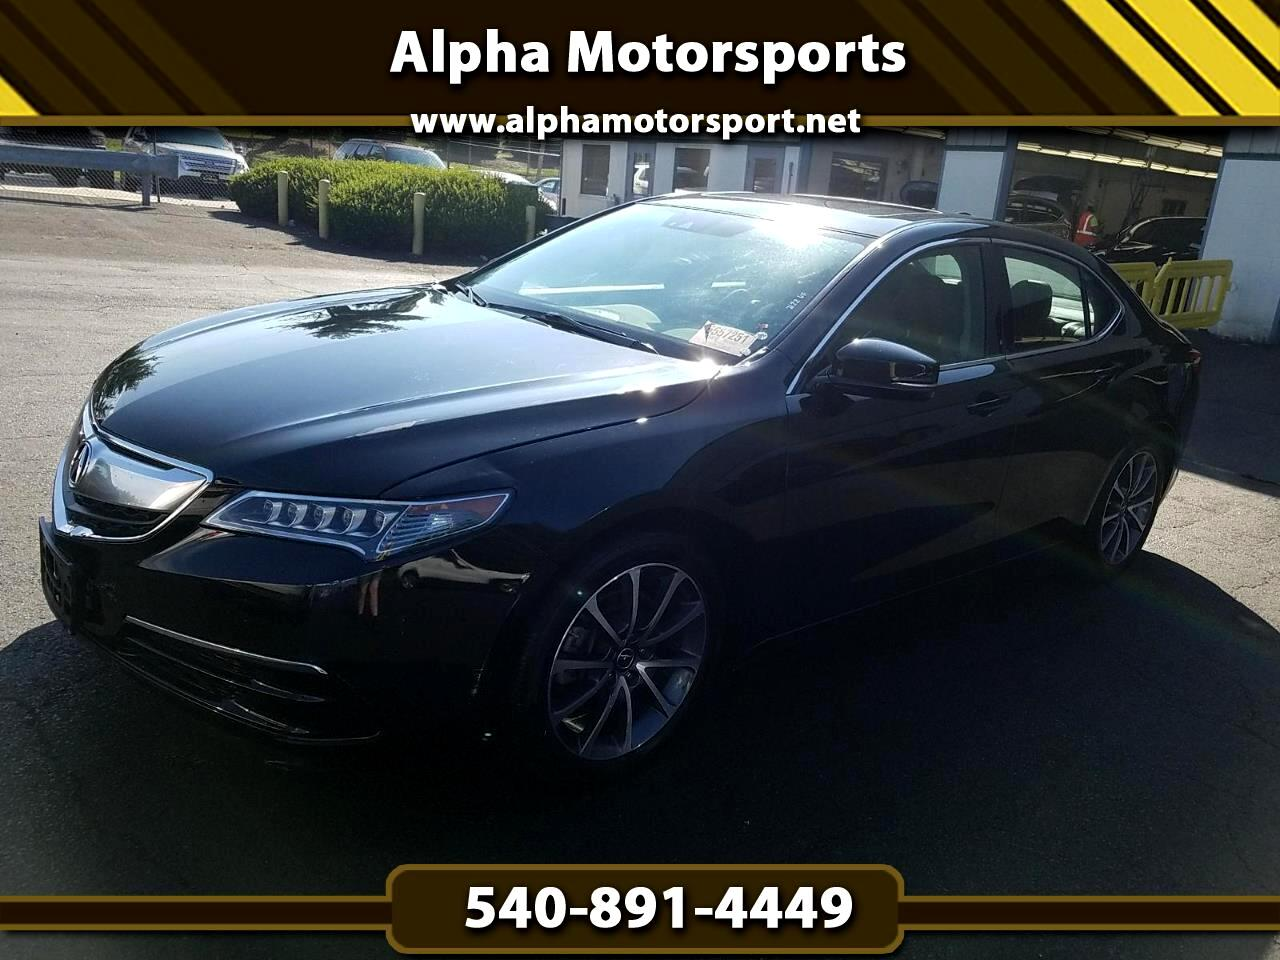 2016 Acura TLX 9-Spd AT SH-AWD w/Technology Package